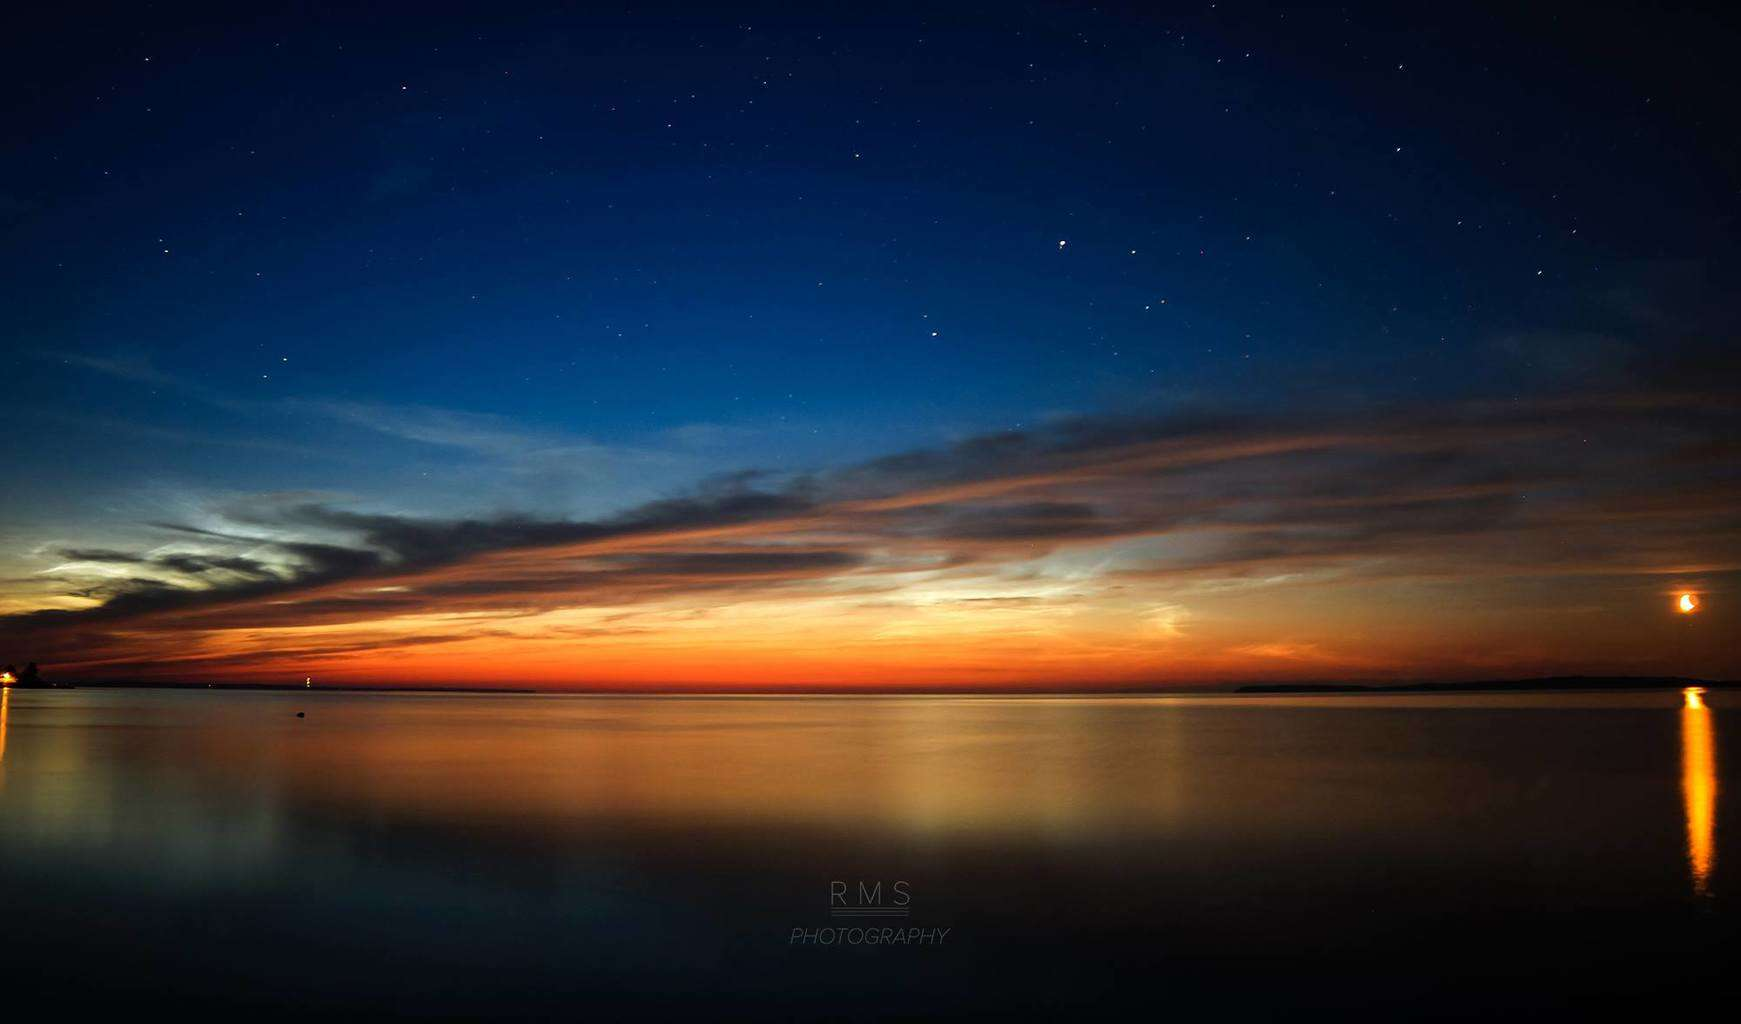 Summer nights are just around the corner! Noctilucent clouds and Moonrise above Limfjord, Denmark. Taken in July, 2014.